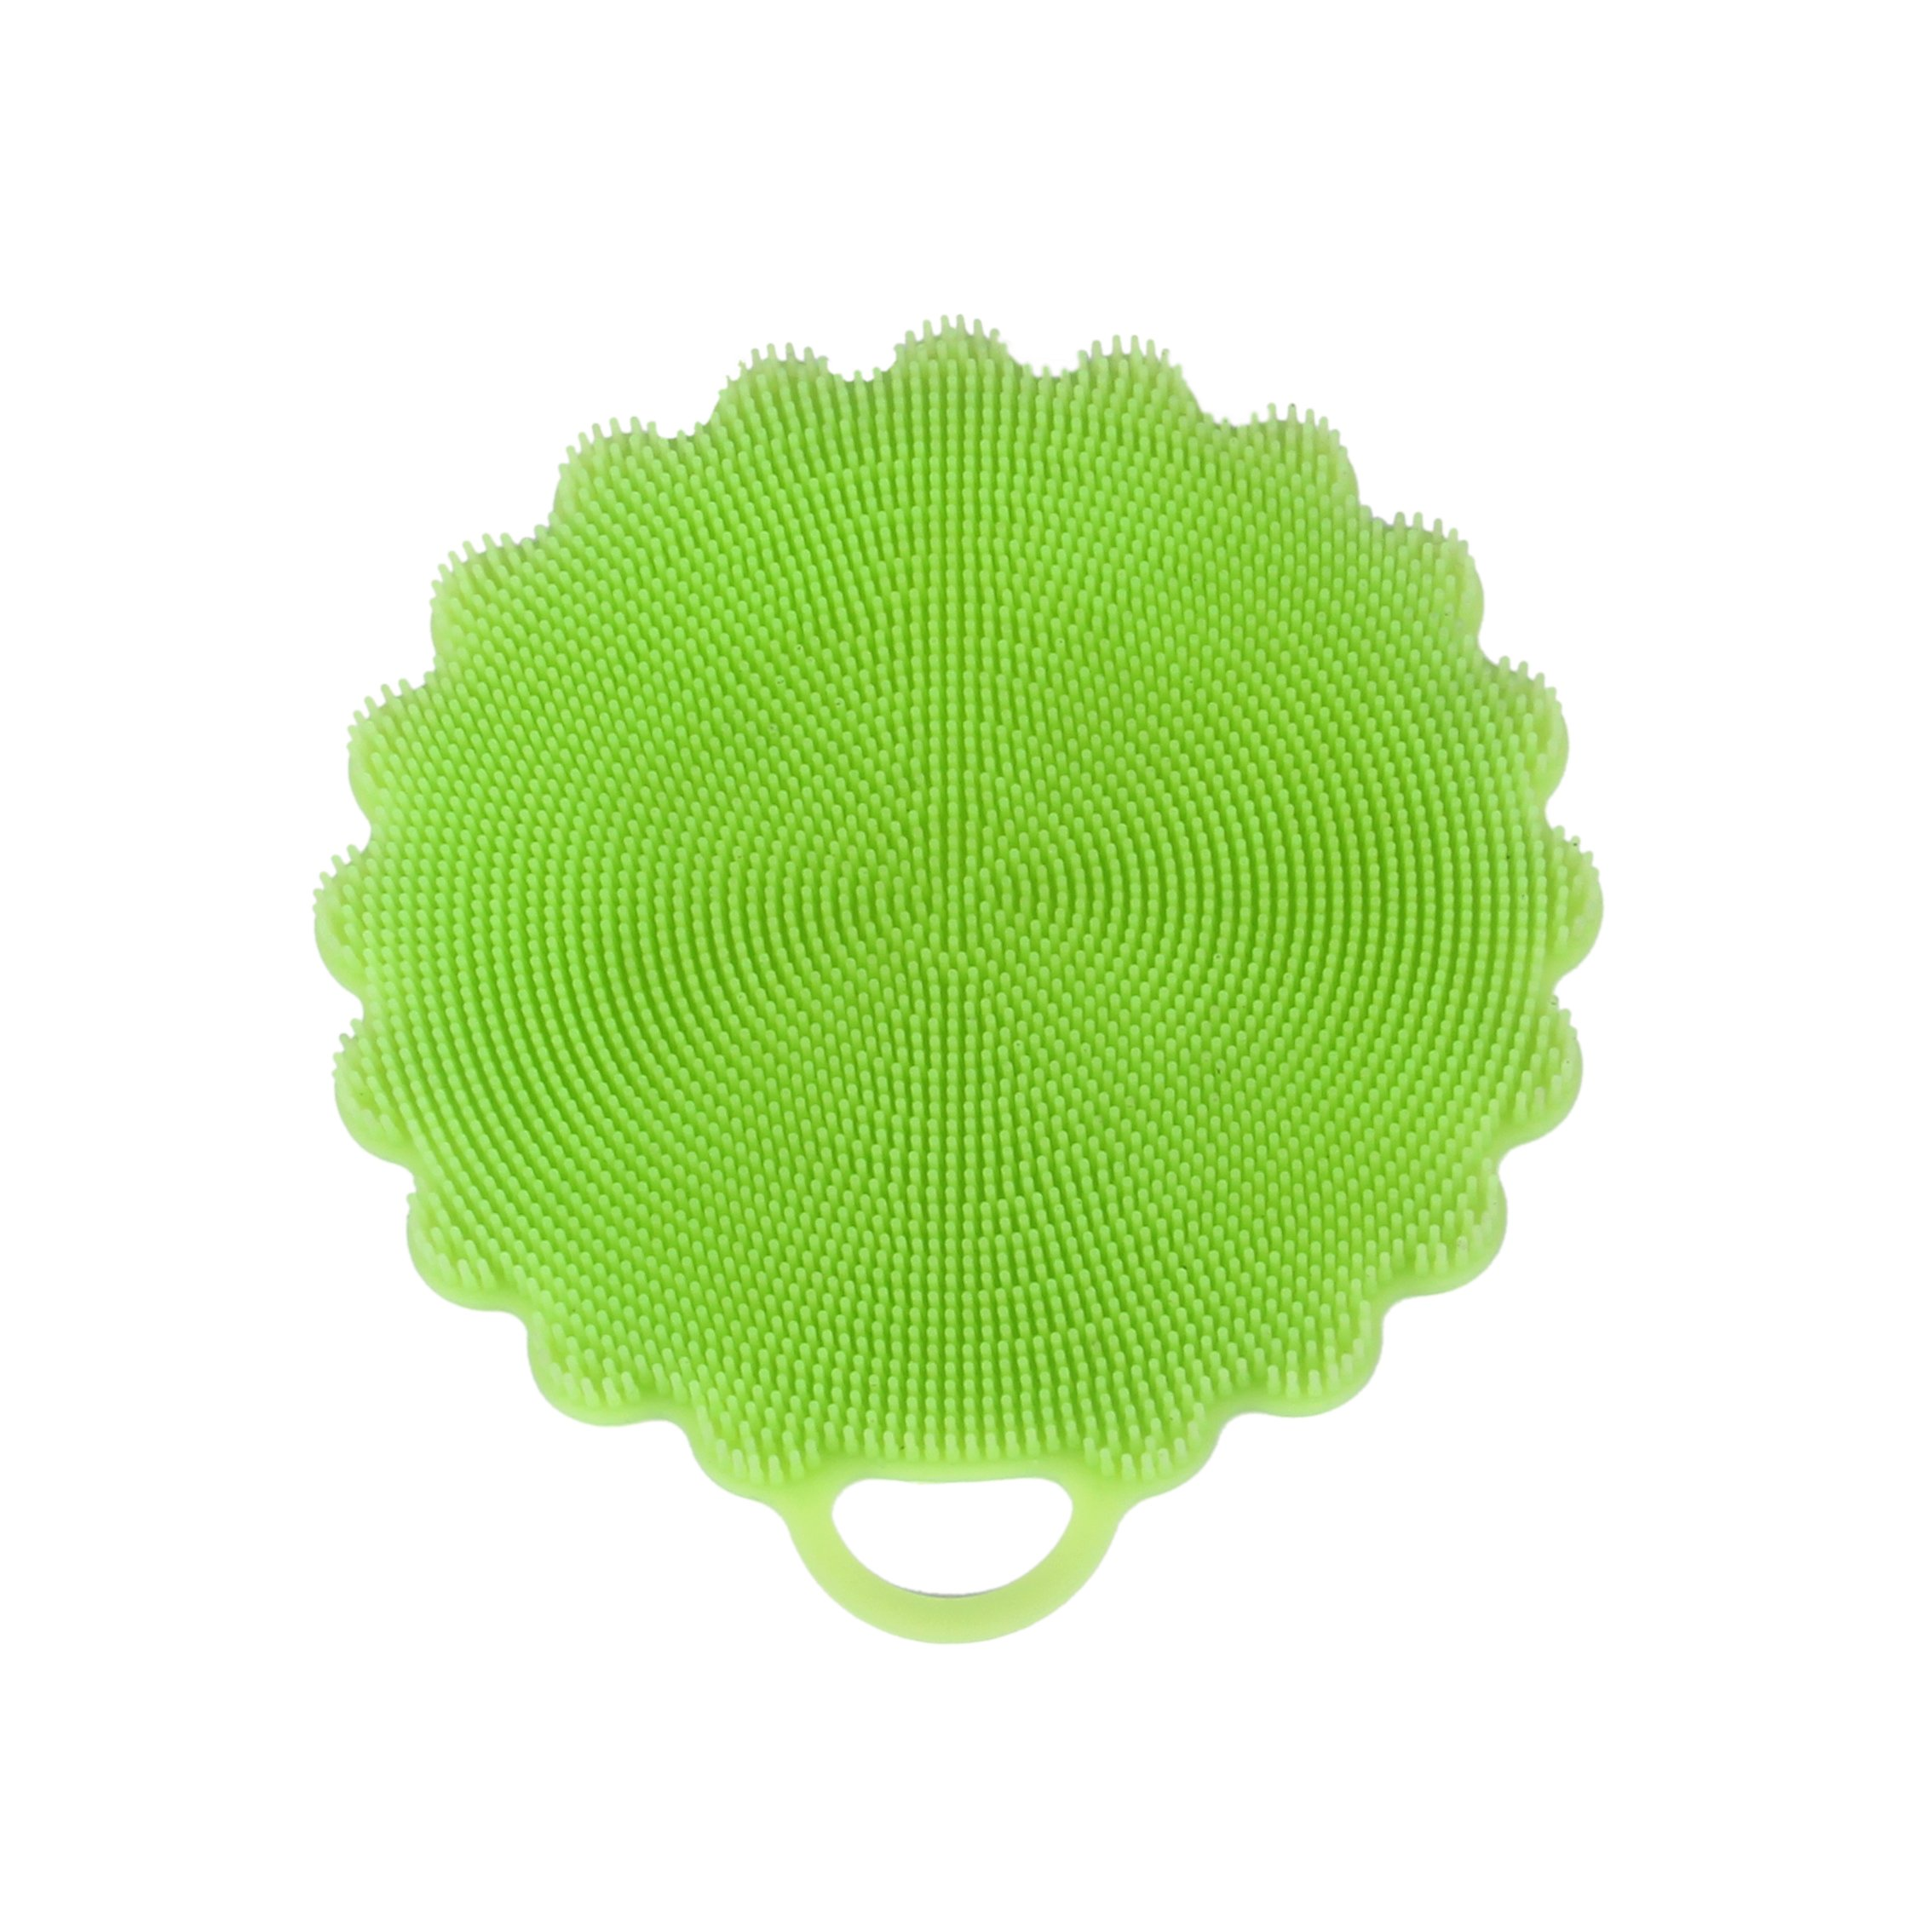 Silicone Multipurpose Cleaning Sponge for Kitchen and Bathroom from KitchenComplete, Uses Include Coasters, Oven Mitts, Easy to Clean, New Technology Cleaning Solution Available Now! (Green-One)